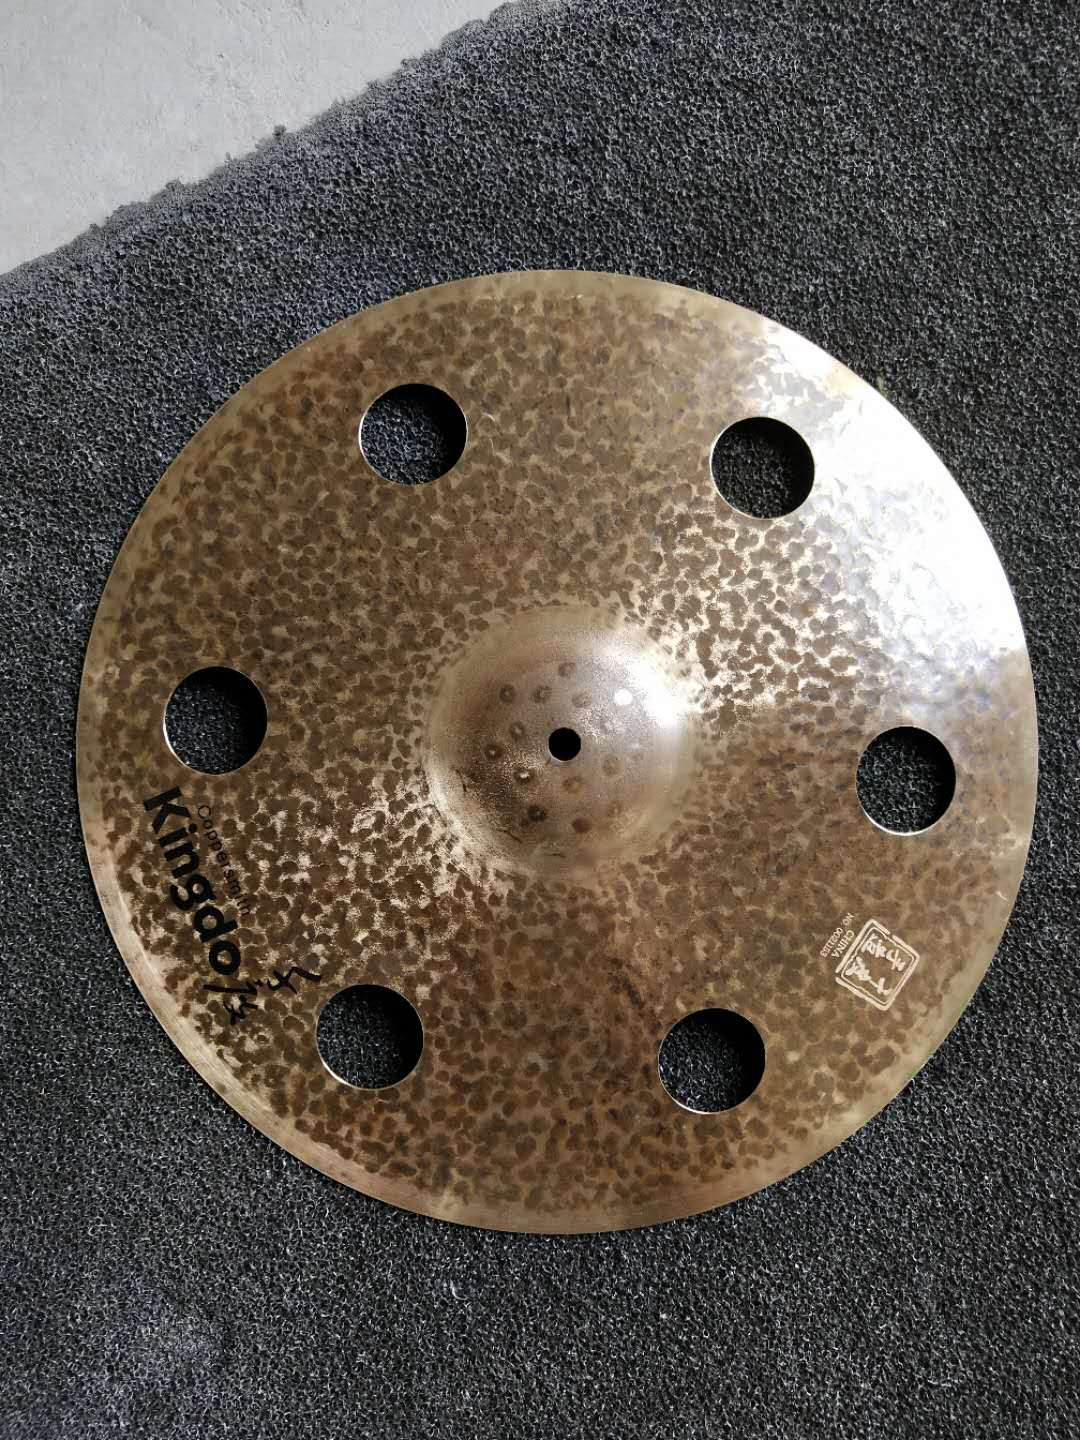 B20 Cymbals With Holes